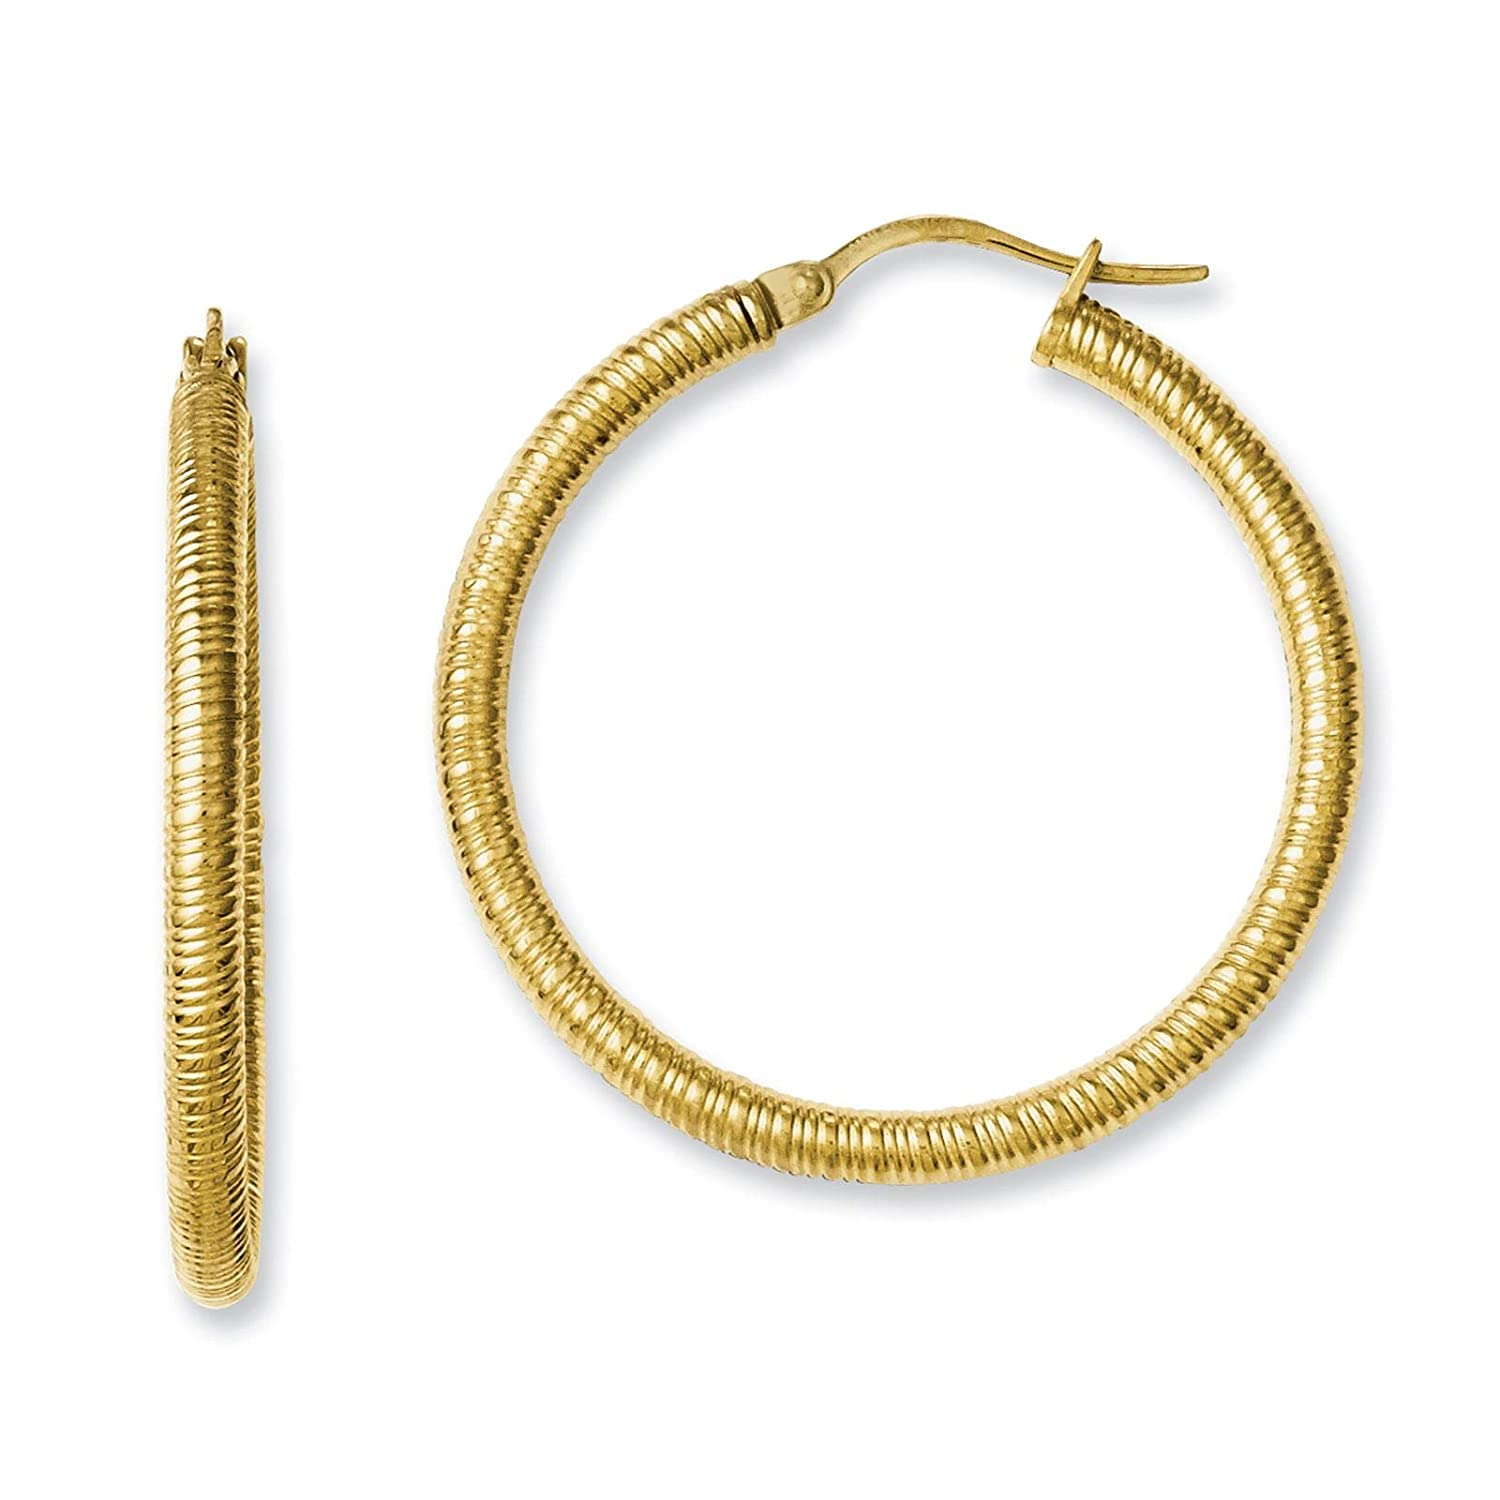 Stainless Steel Yellow IP-plated Polished /& Textured Round Hoop Earrings 3mm x 37mm